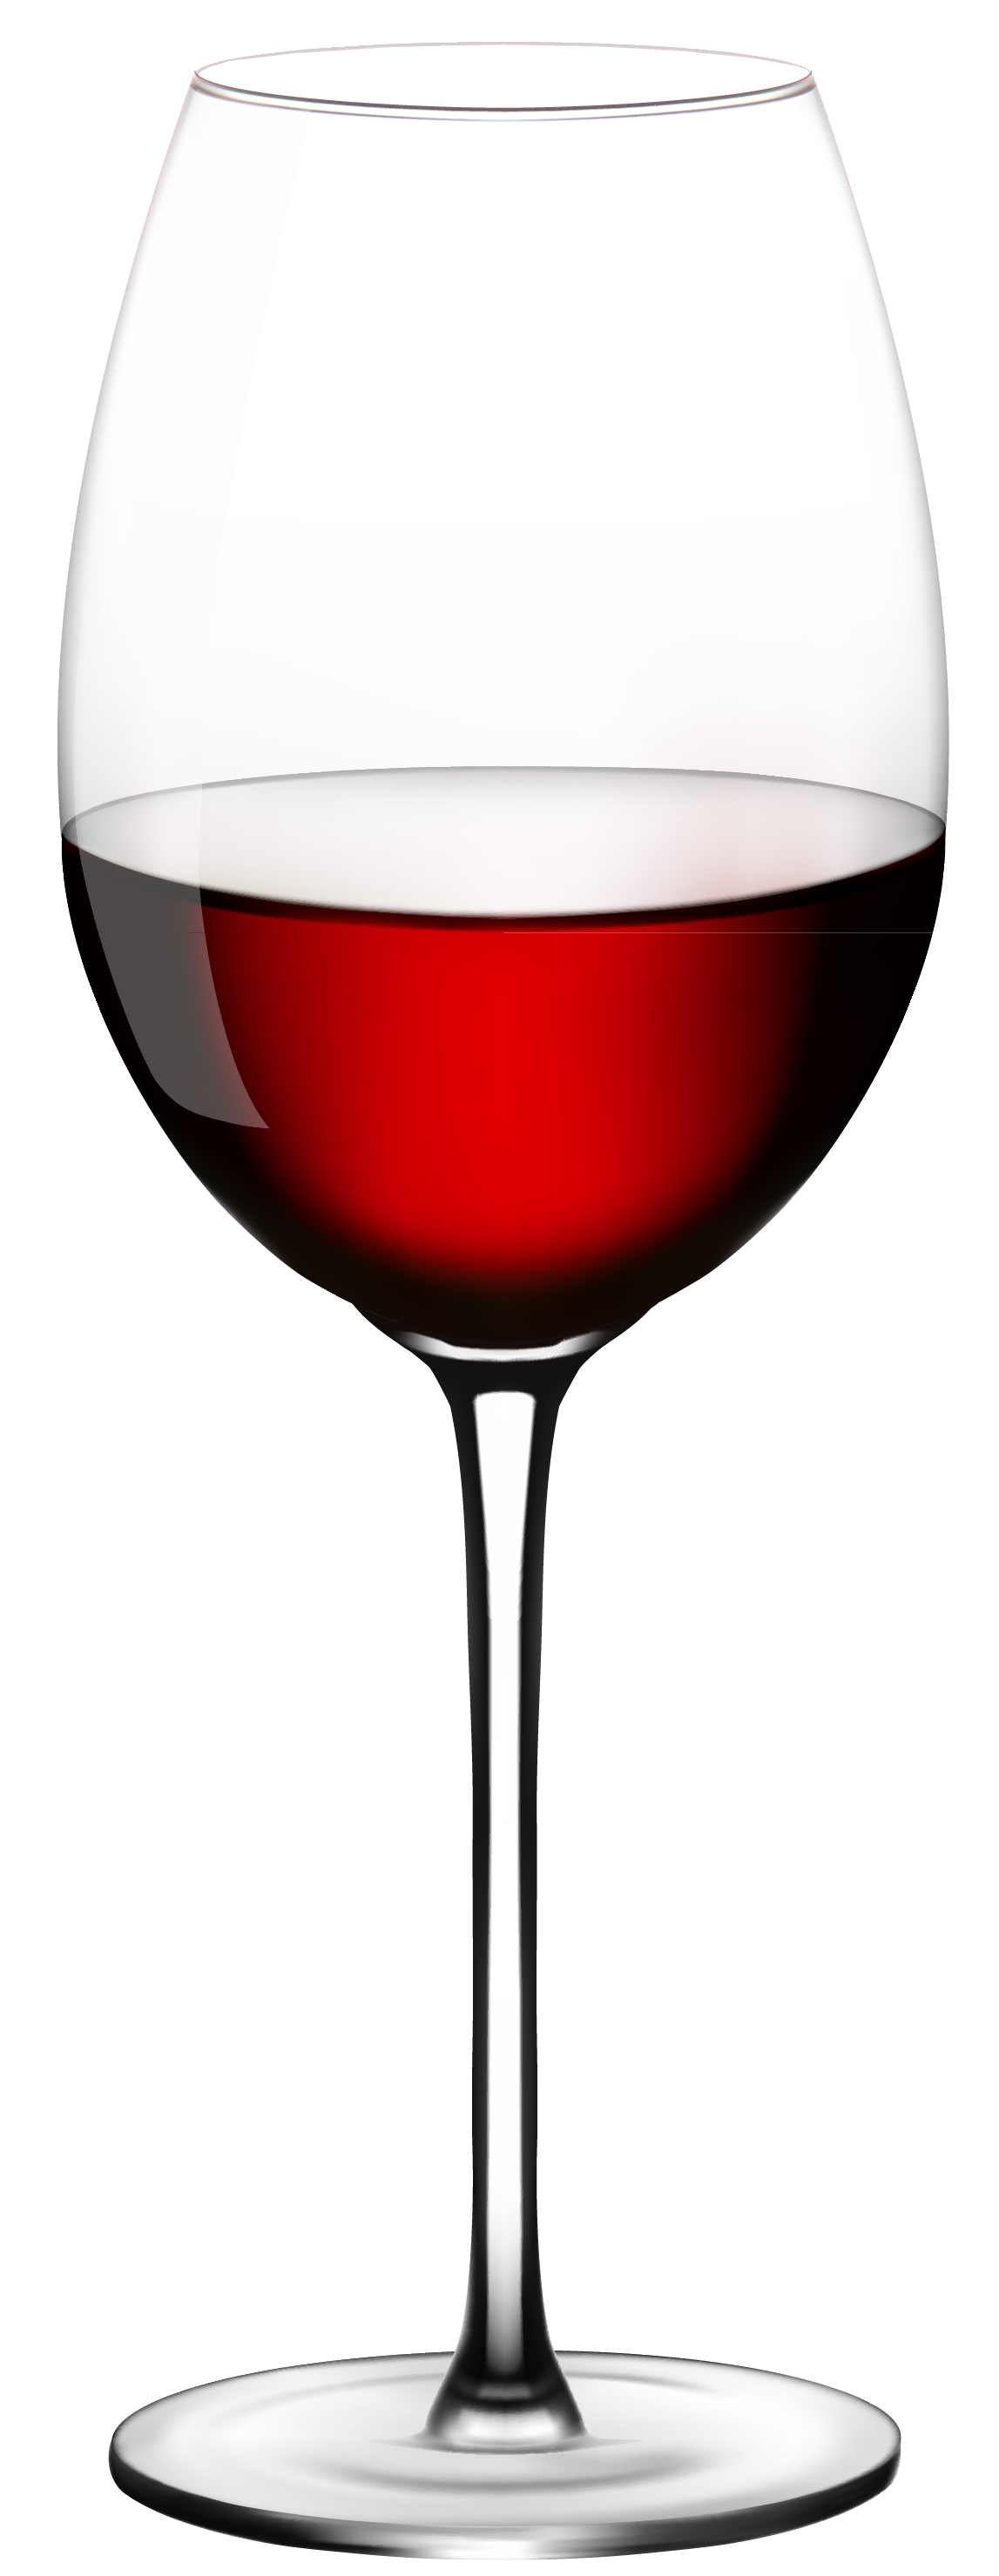 Wine Glass Png Image image #31791